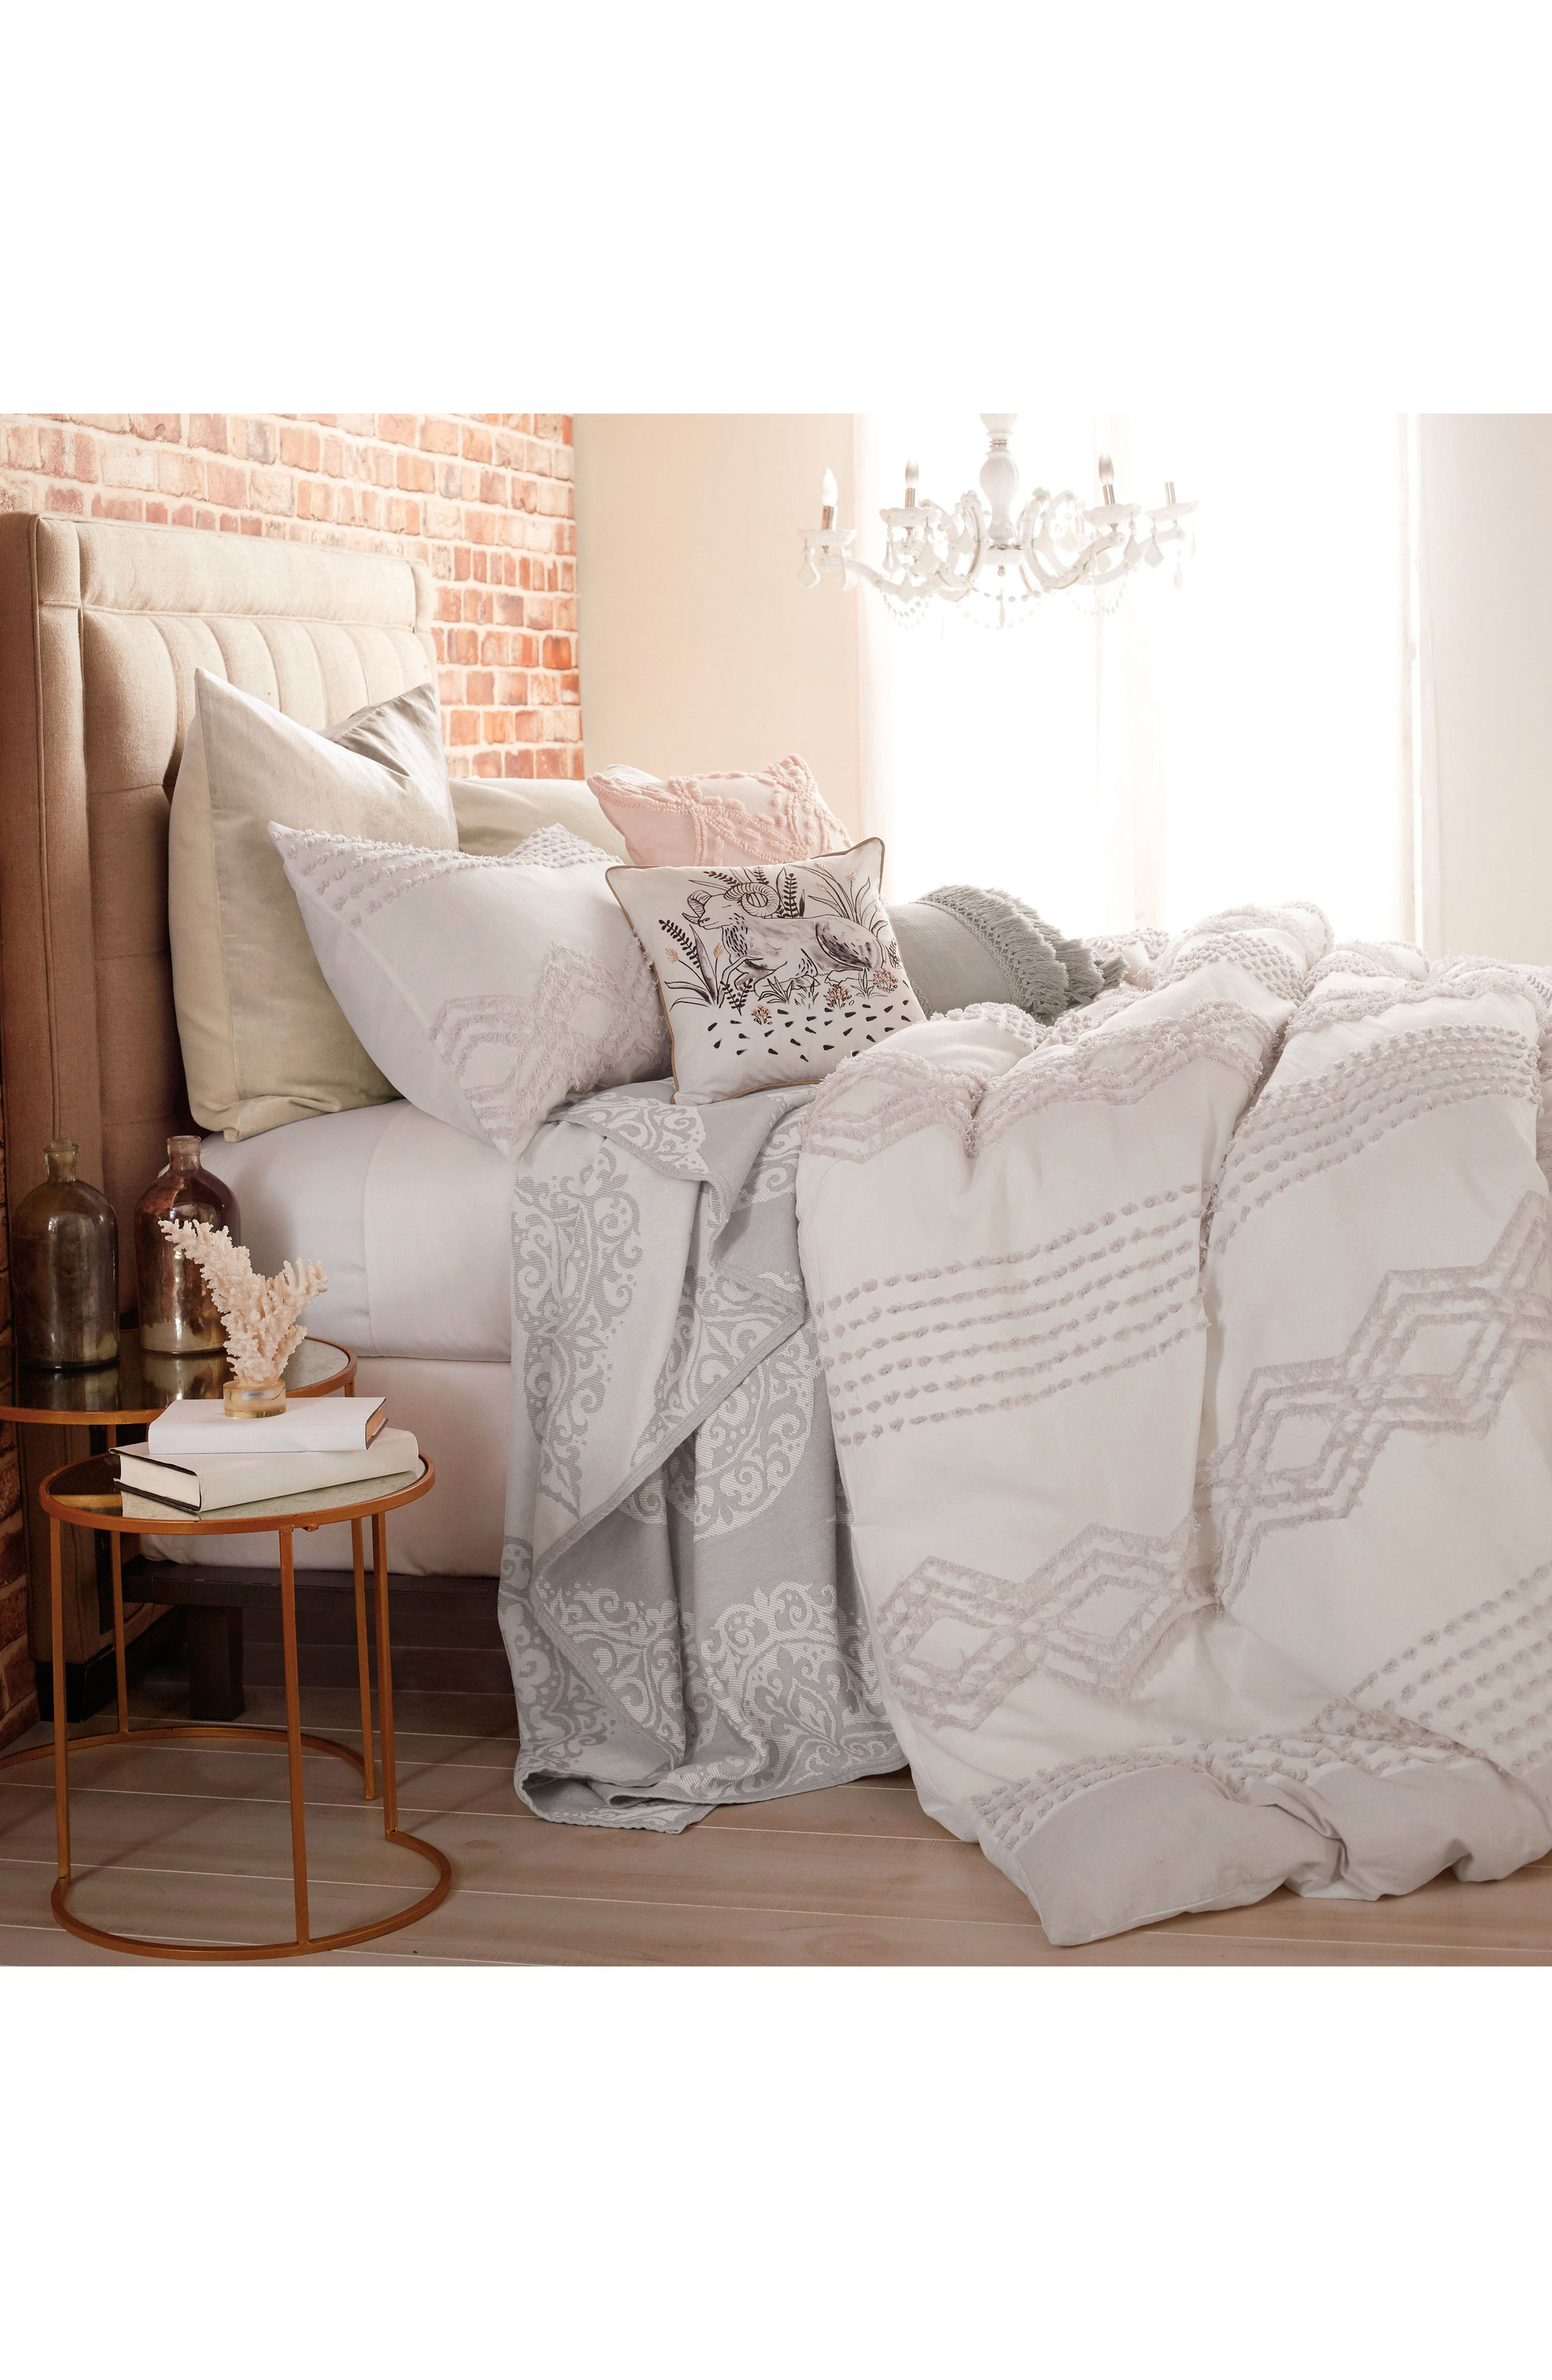 diy headboards beds tufted full frame upholstered dimensions twin footboard headboard comforter window nice and of bedroom cheap bedding size